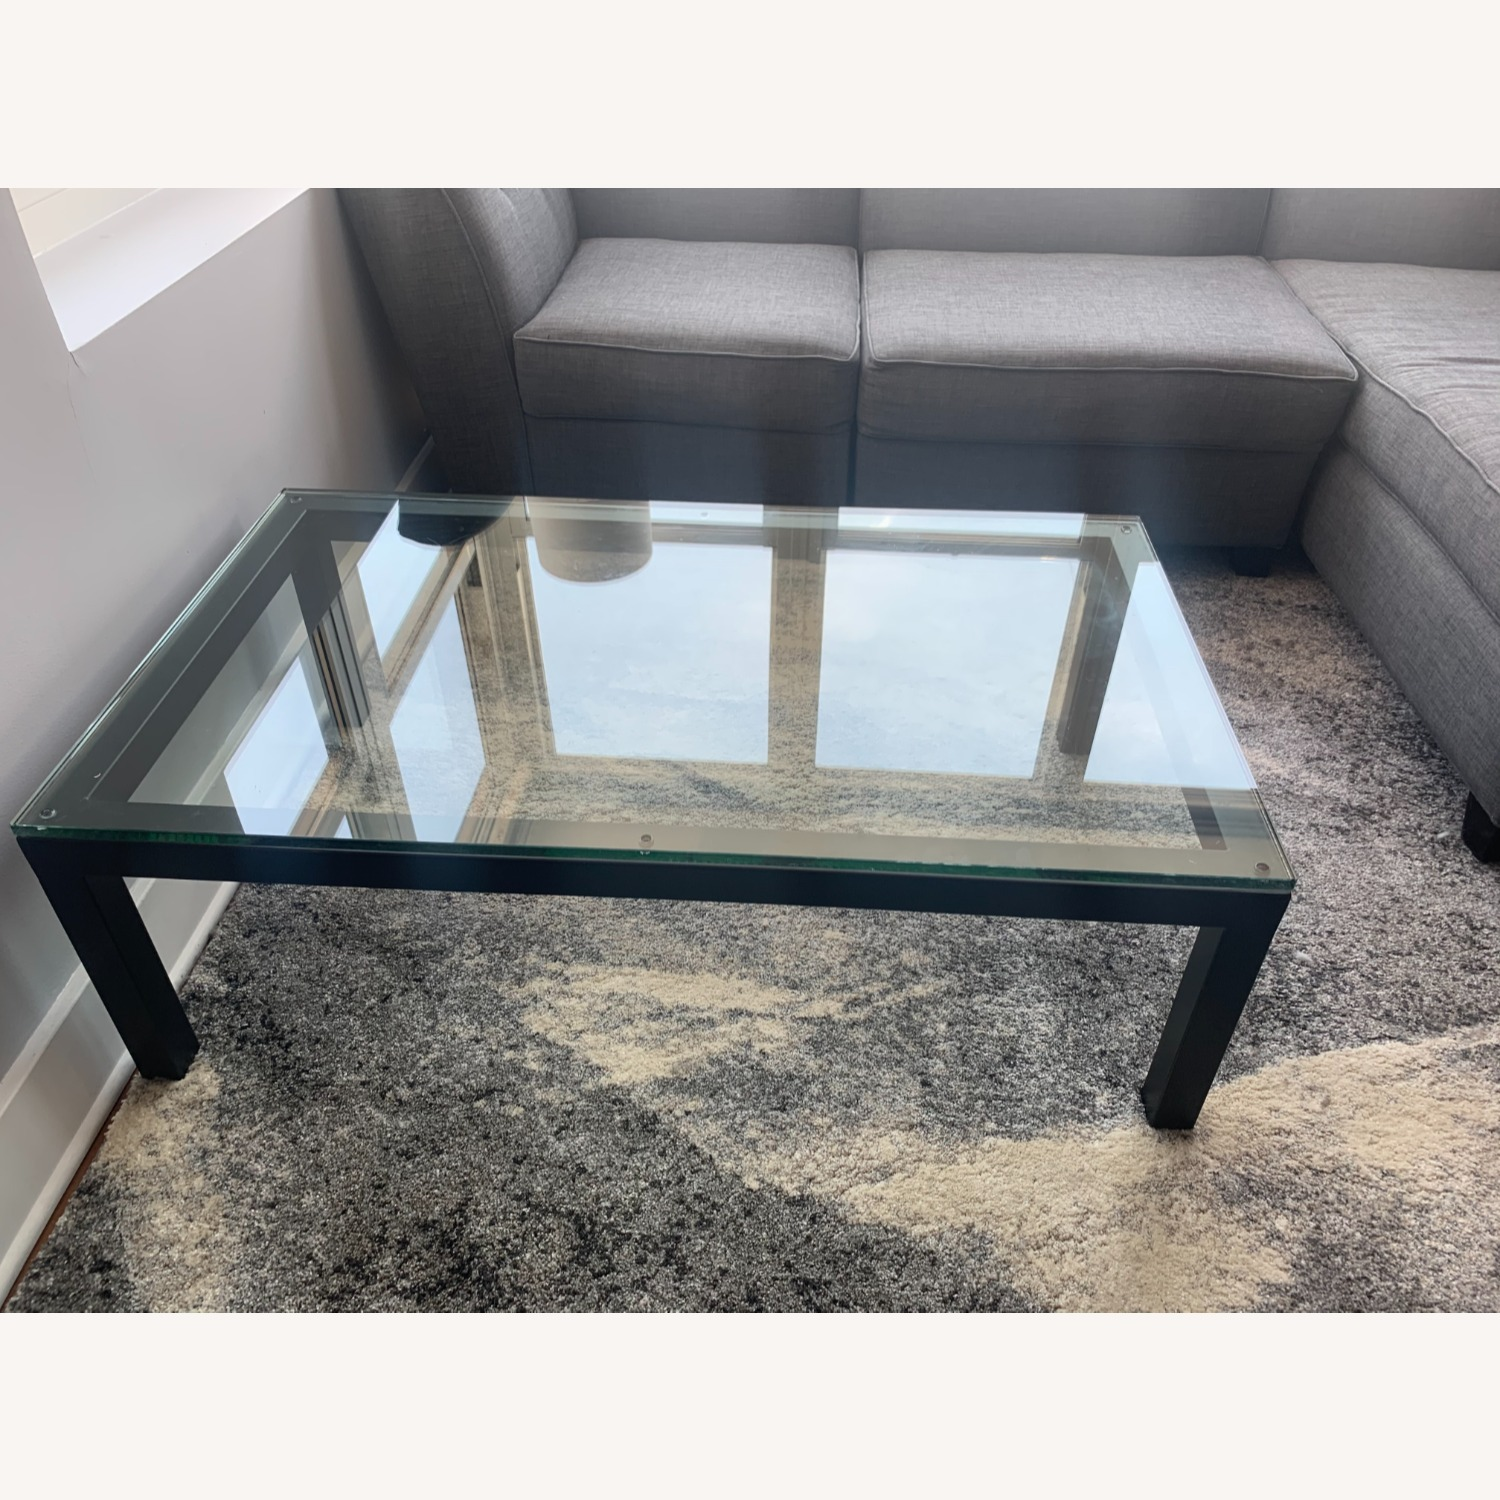 Crate and Barrel Glass Rectangular Coffee Table - image-2